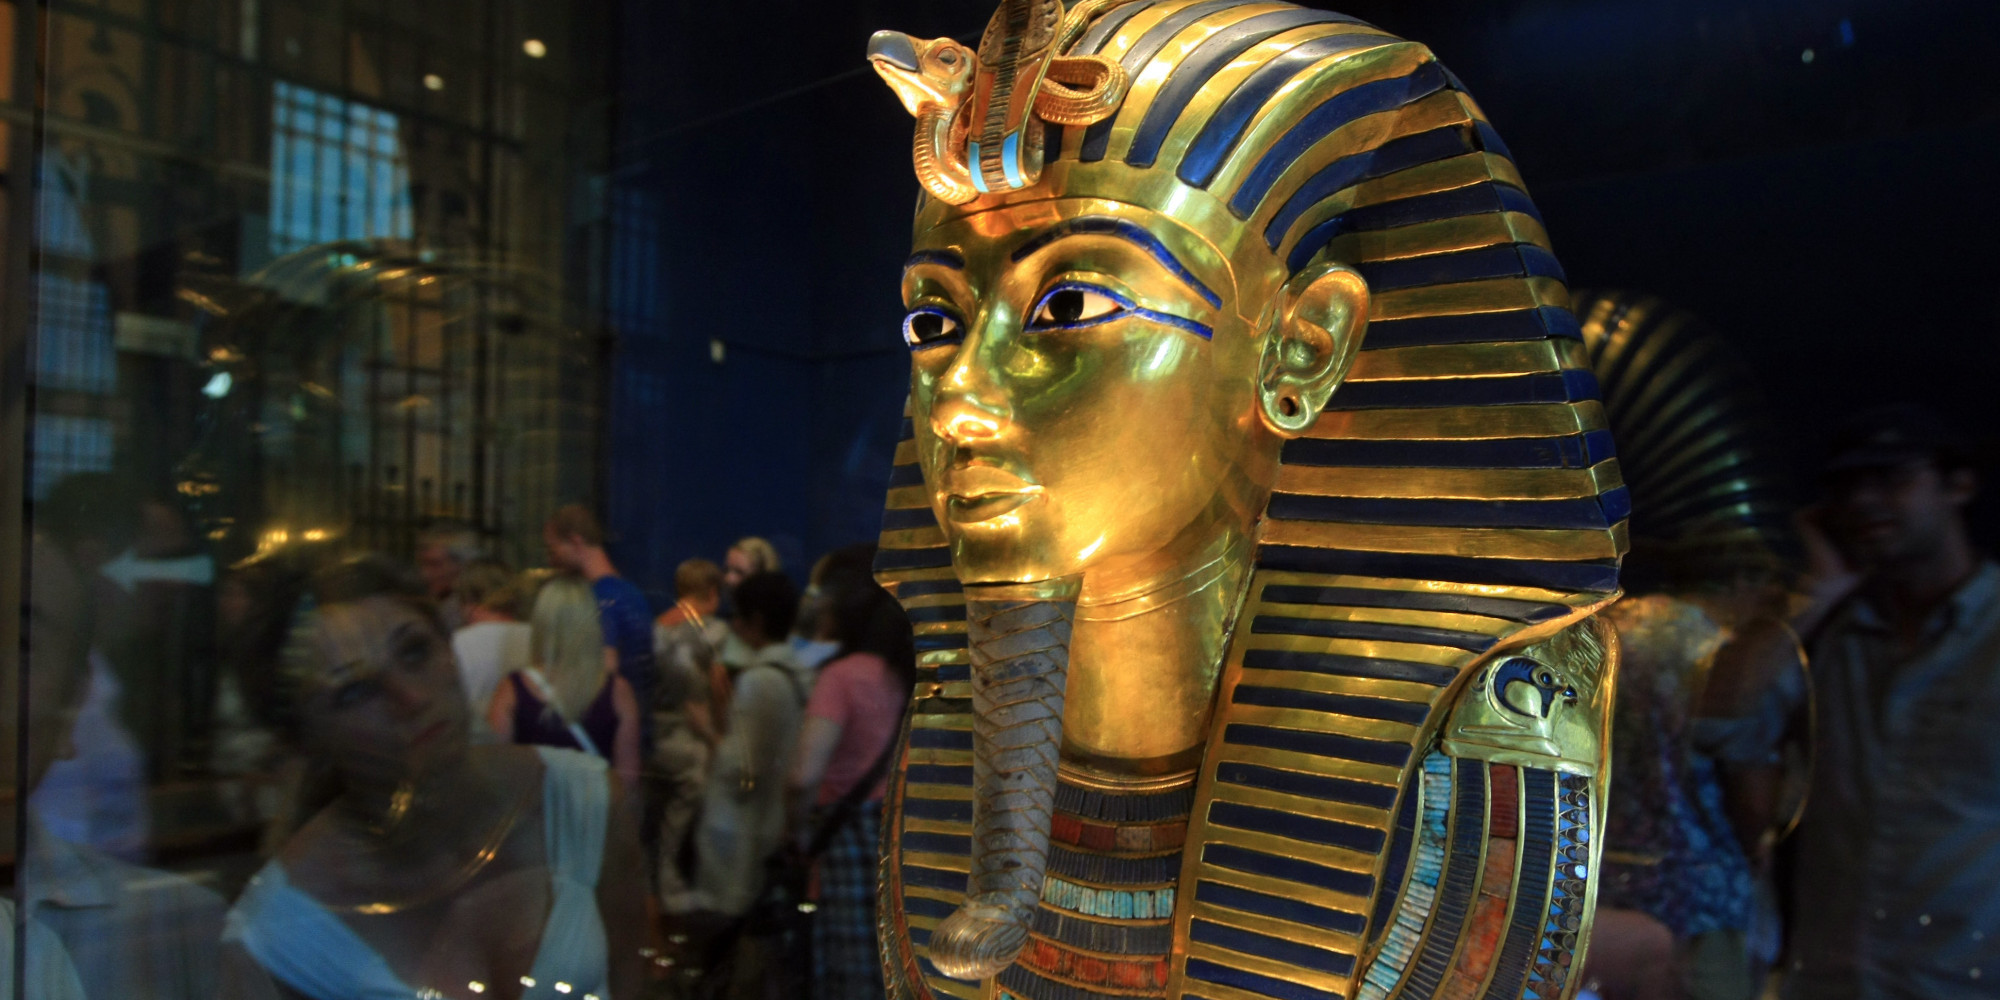 the life of king tutankhamen Tutankhamun, also spelled tutankhamen and tutankhamon, original name tutankhaten, byname king tut, (flourished 14th century bce), king of ancient egypt (reigned 1333–23 bce), known chiefly for his intact tomb, kv 62 (tomb 62).